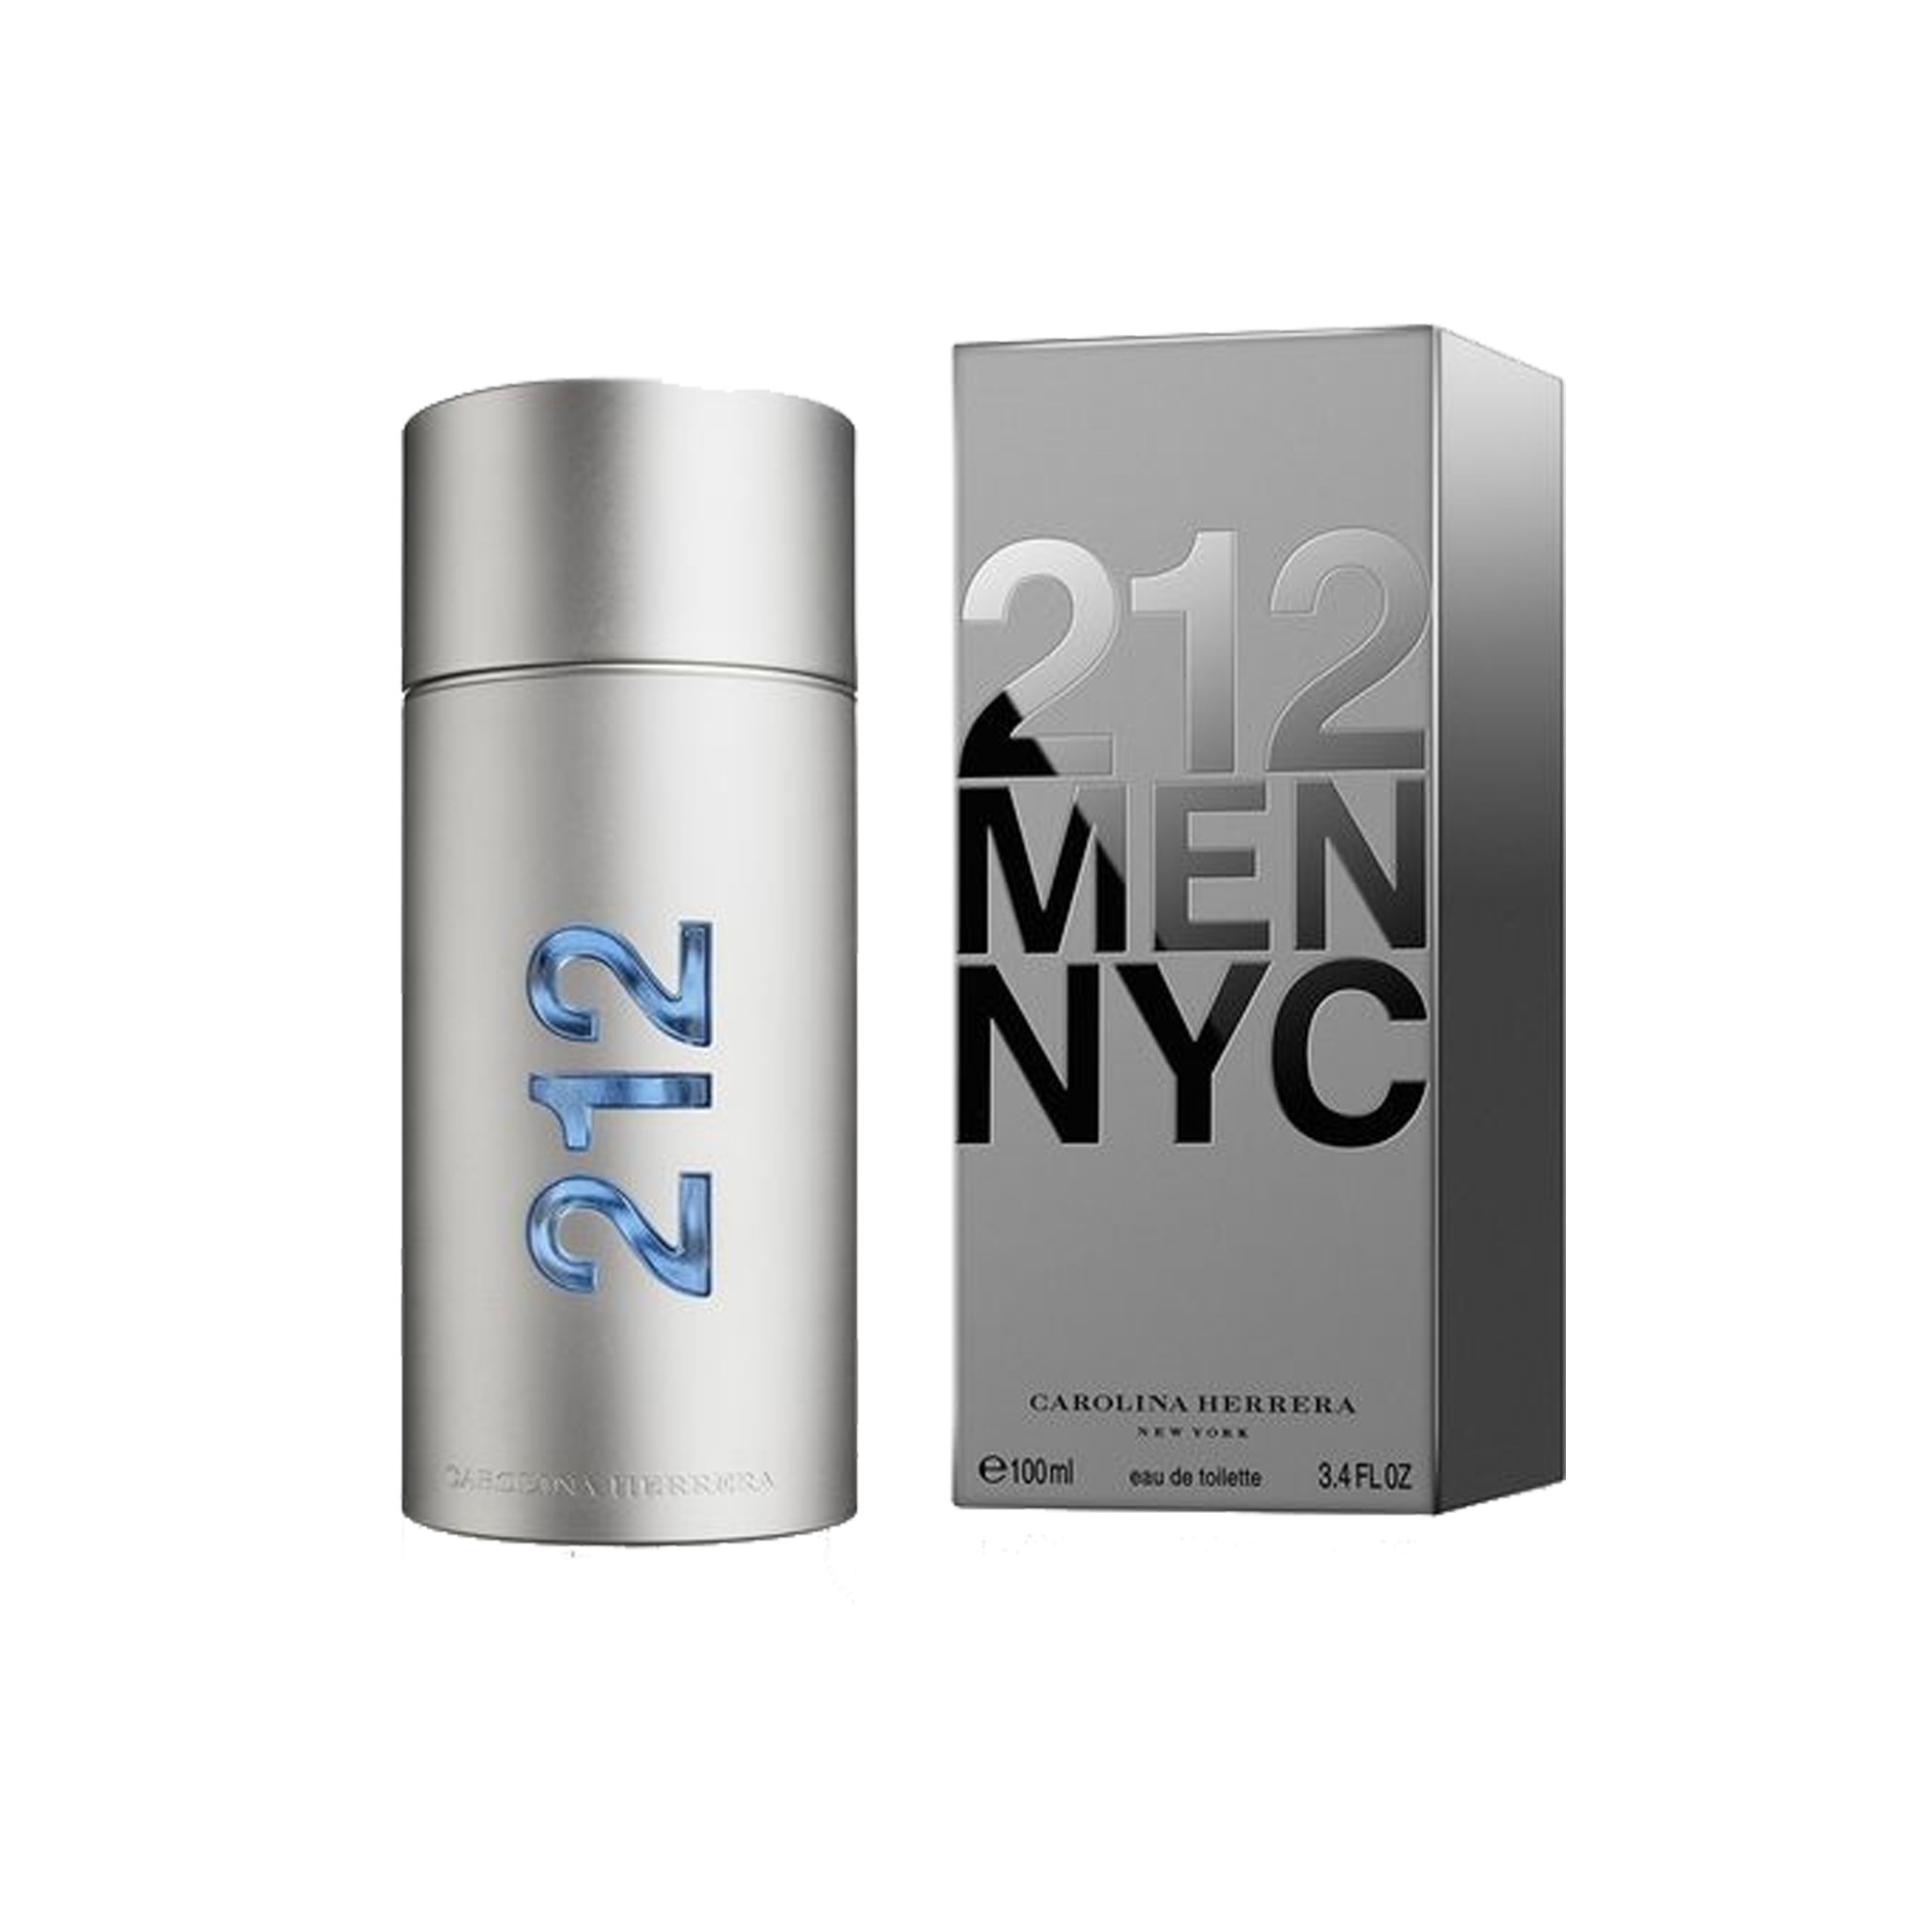 Perfume 212 Men Nyc 200ml